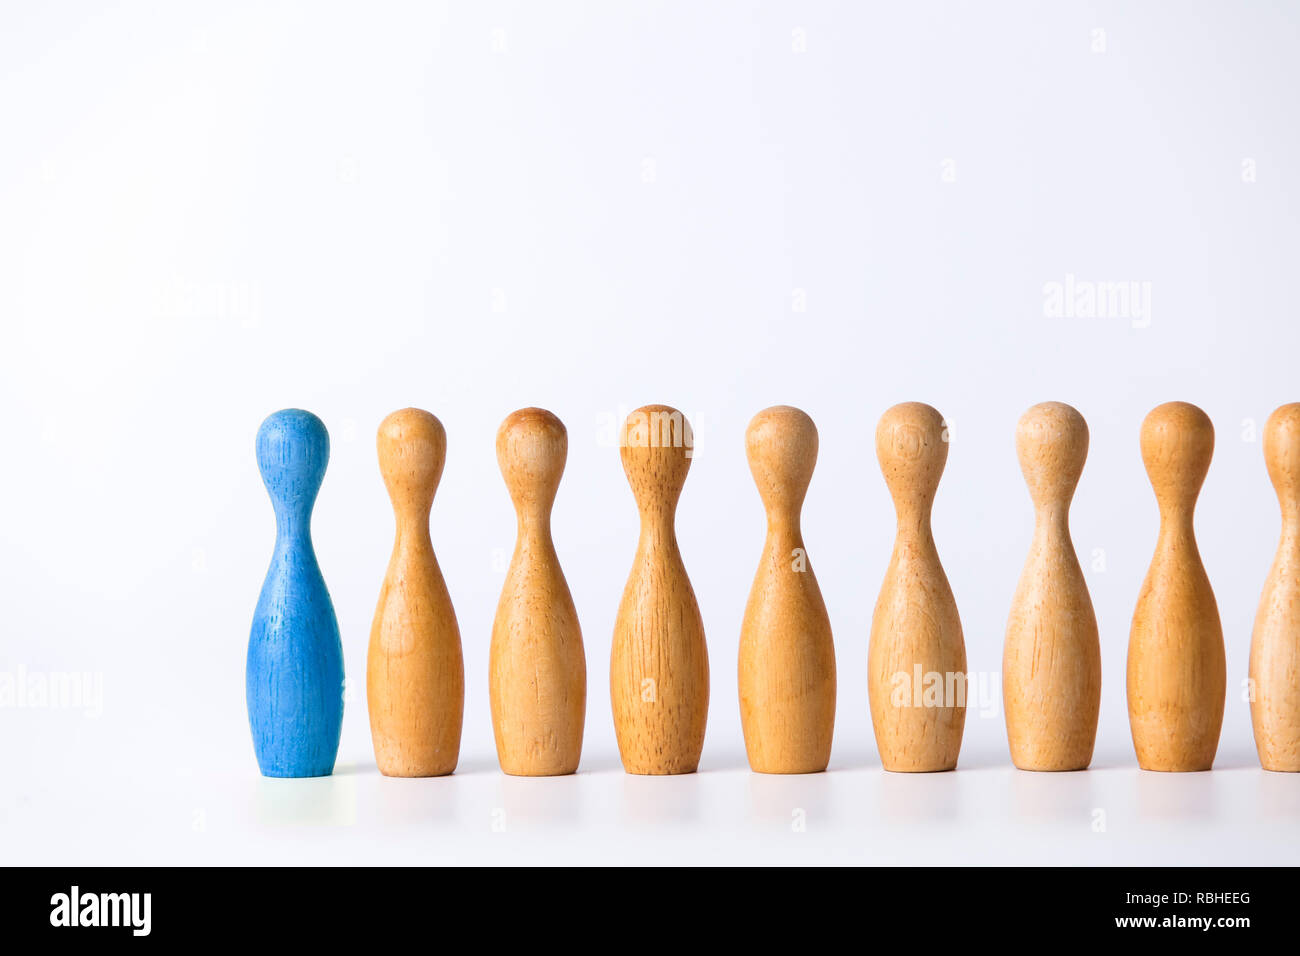 wooden figure stands out from the crowd. Business leadership concept - Stock Image